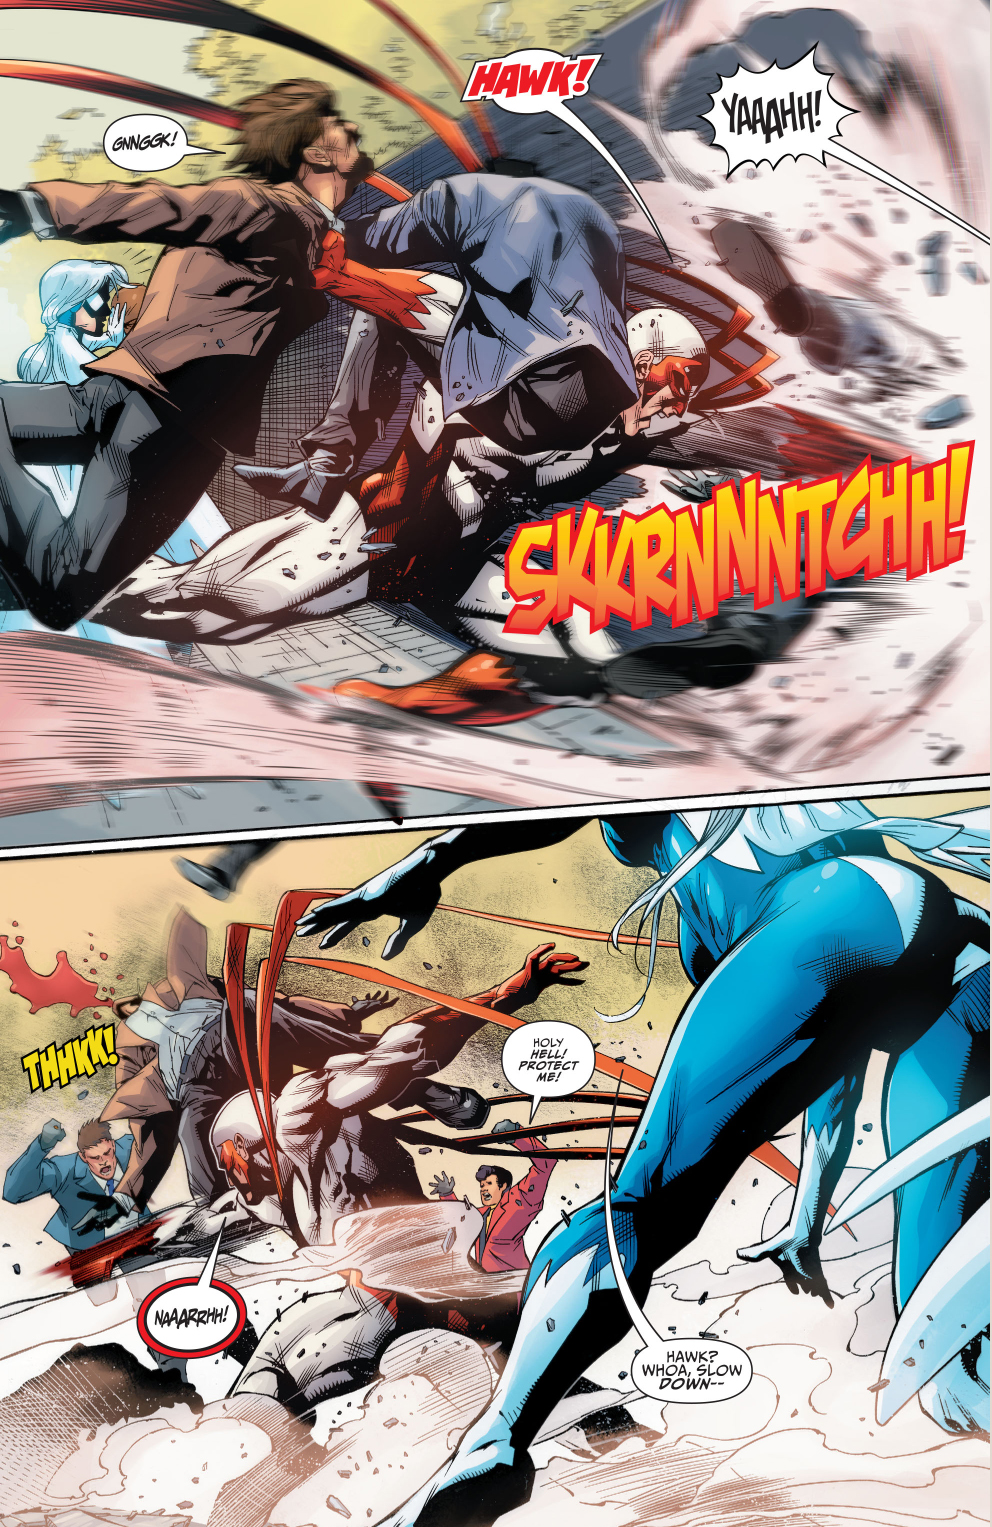 hawk and dove beating up on gangsters